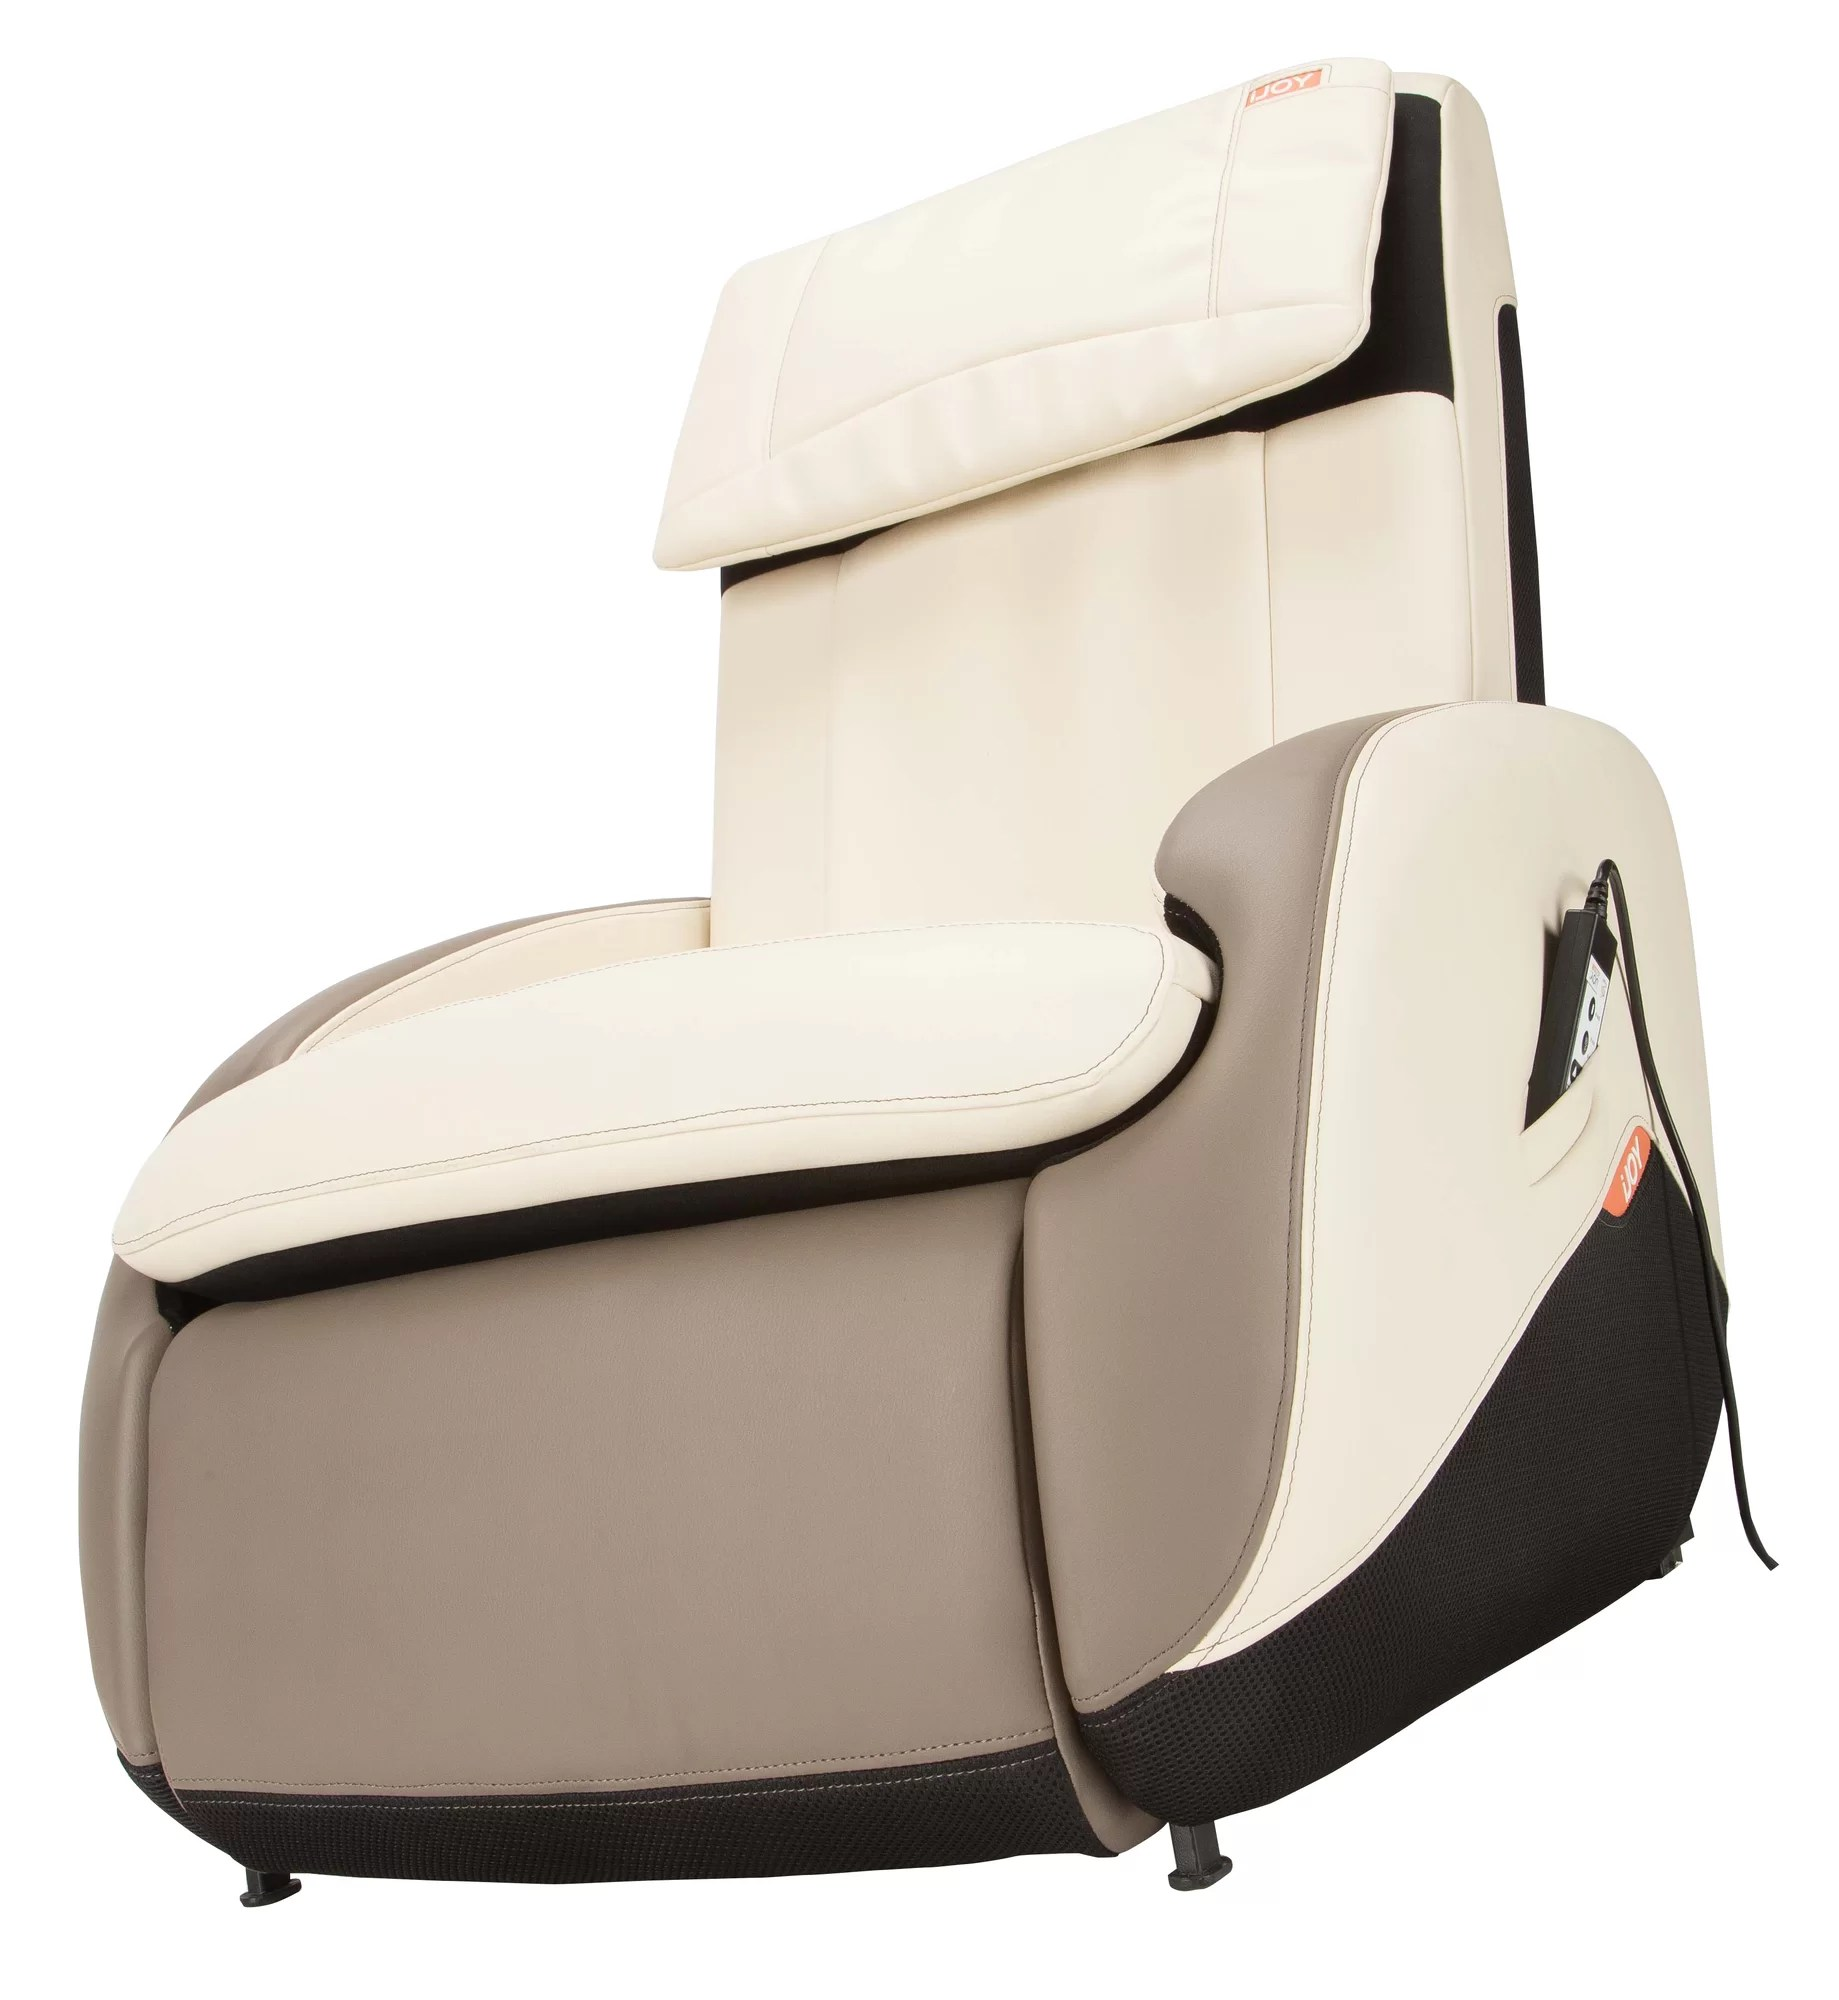 human touch massage chairs walmart deck chair covers ijoy active 2 zero gravity ebay